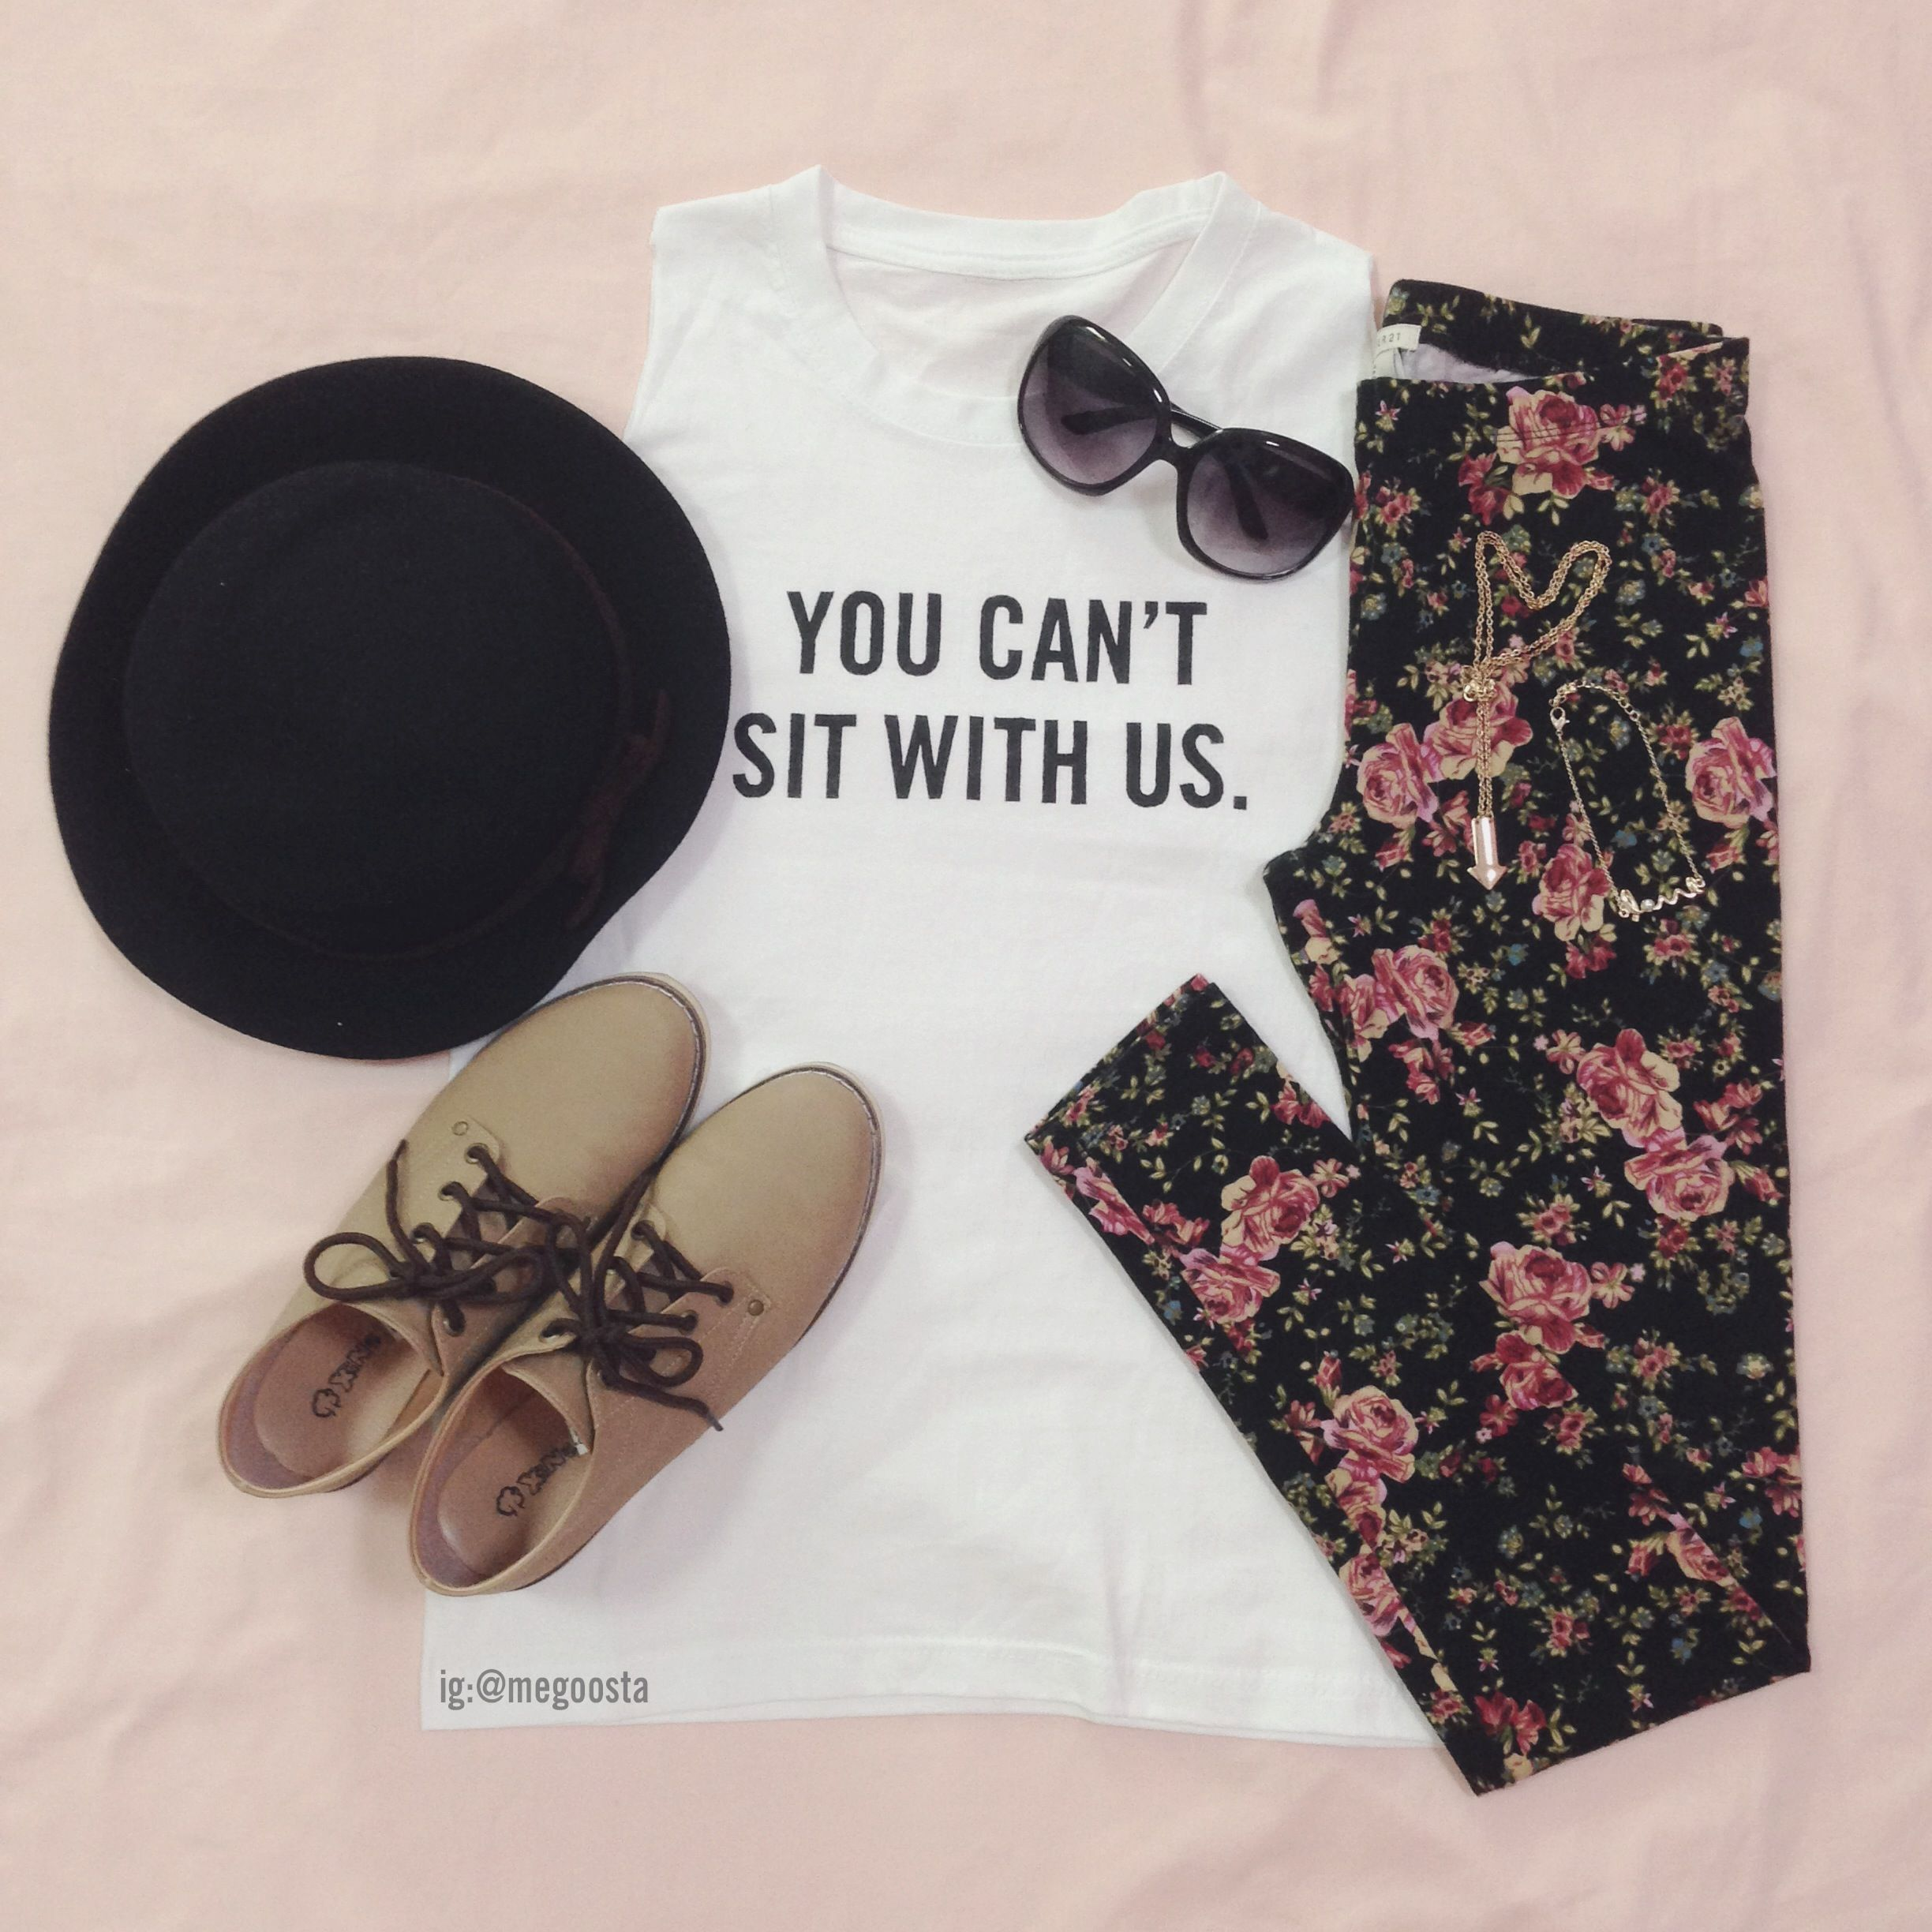 Diy Fashion Beauty Youtube: DIY Brandy Melville You Can't Sit With Us Graphic Tee